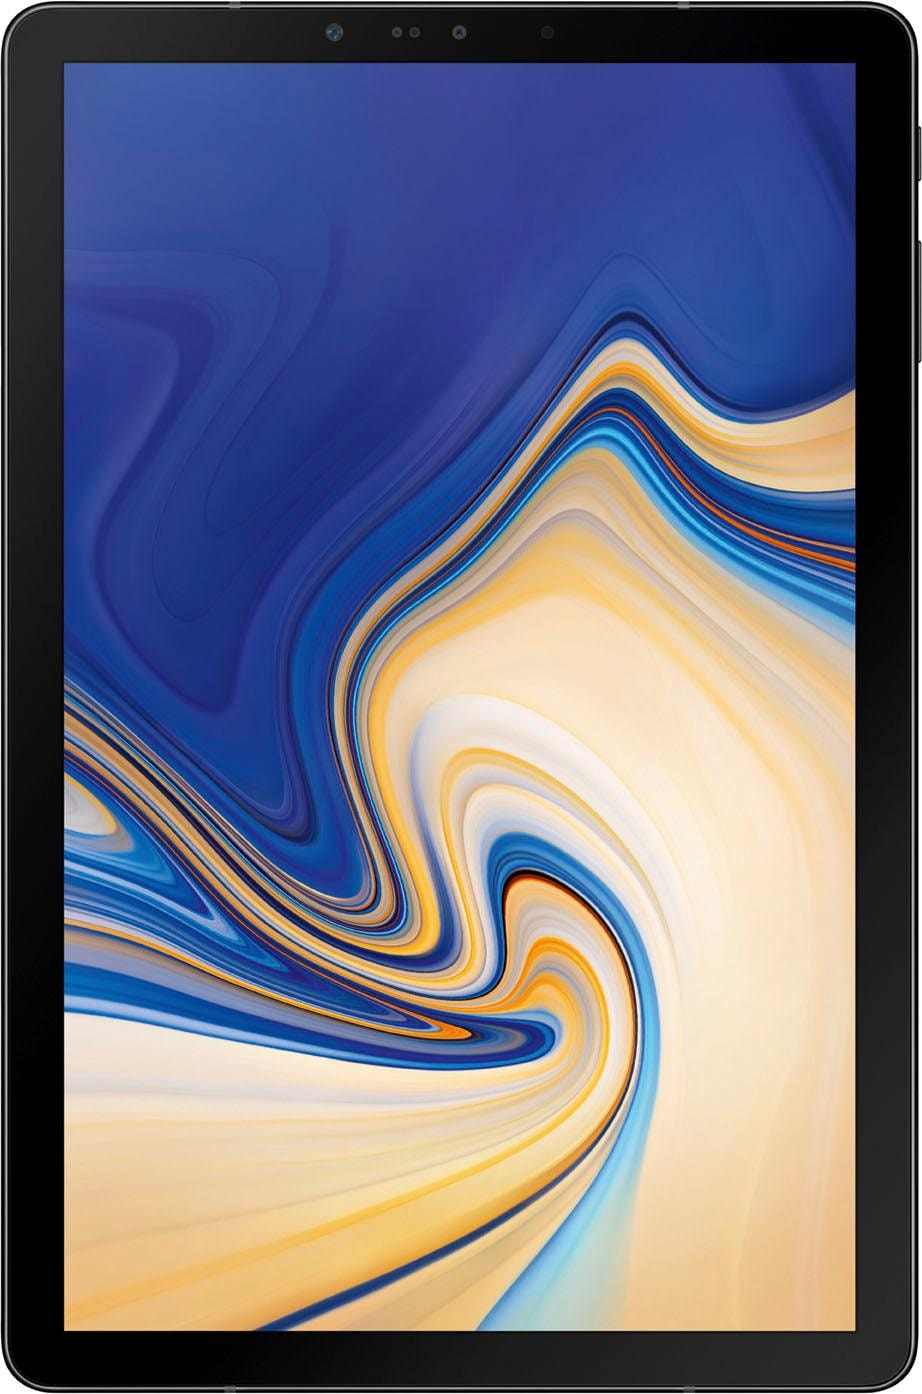 samsung tab s4 wifi tablet 10 5 39 39 64 gb android auf. Black Bedroom Furniture Sets. Home Design Ideas